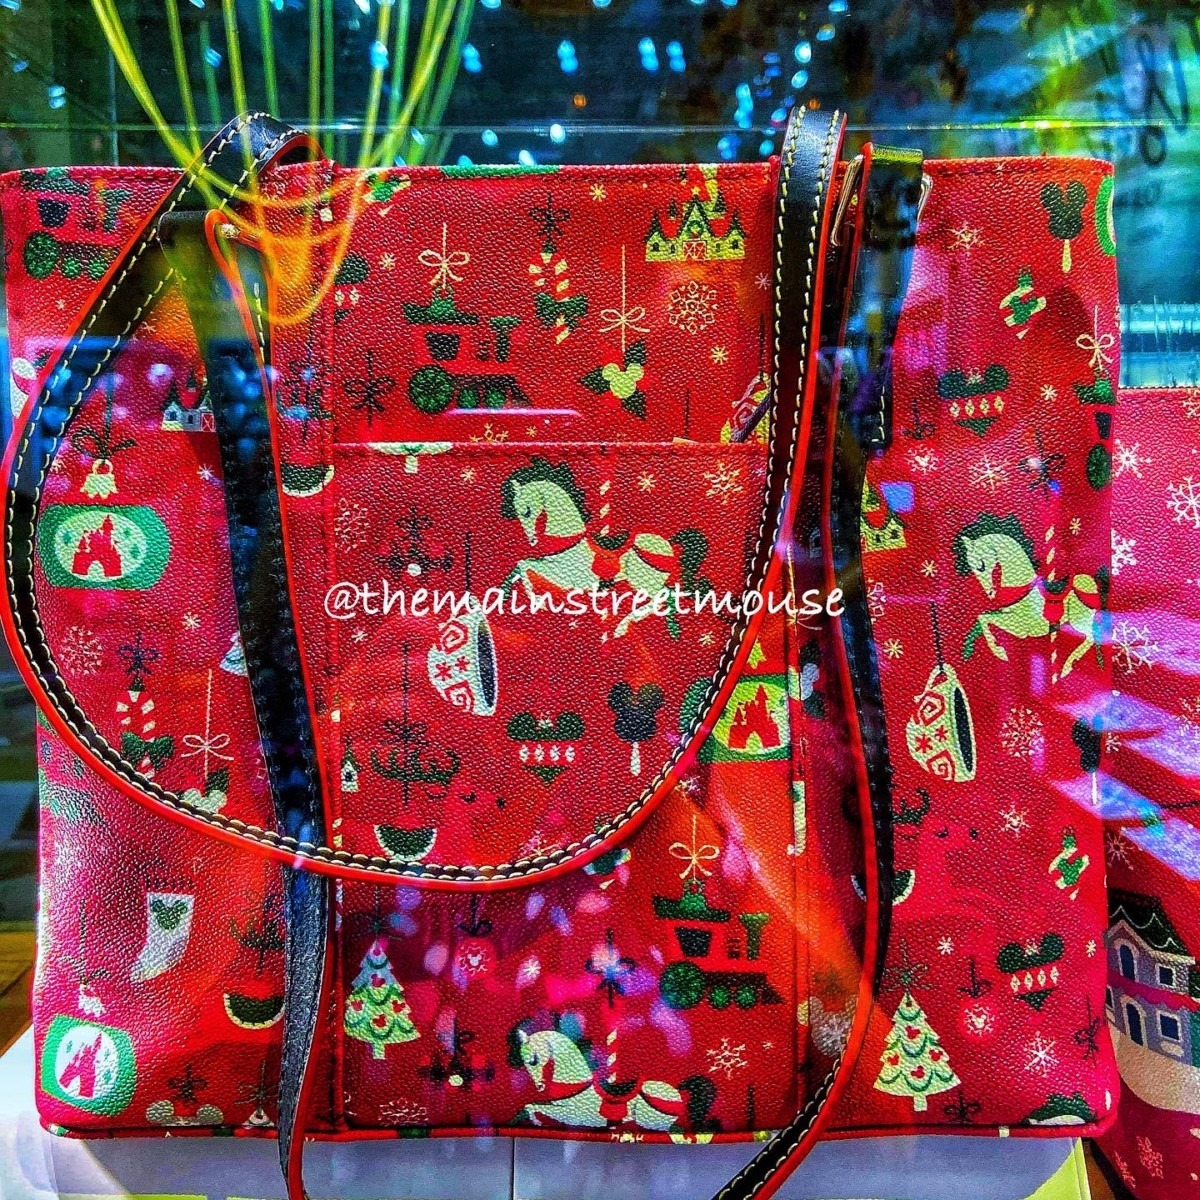 The Holiday Disney Dooney & Bourke Bags are Available Friday! 4